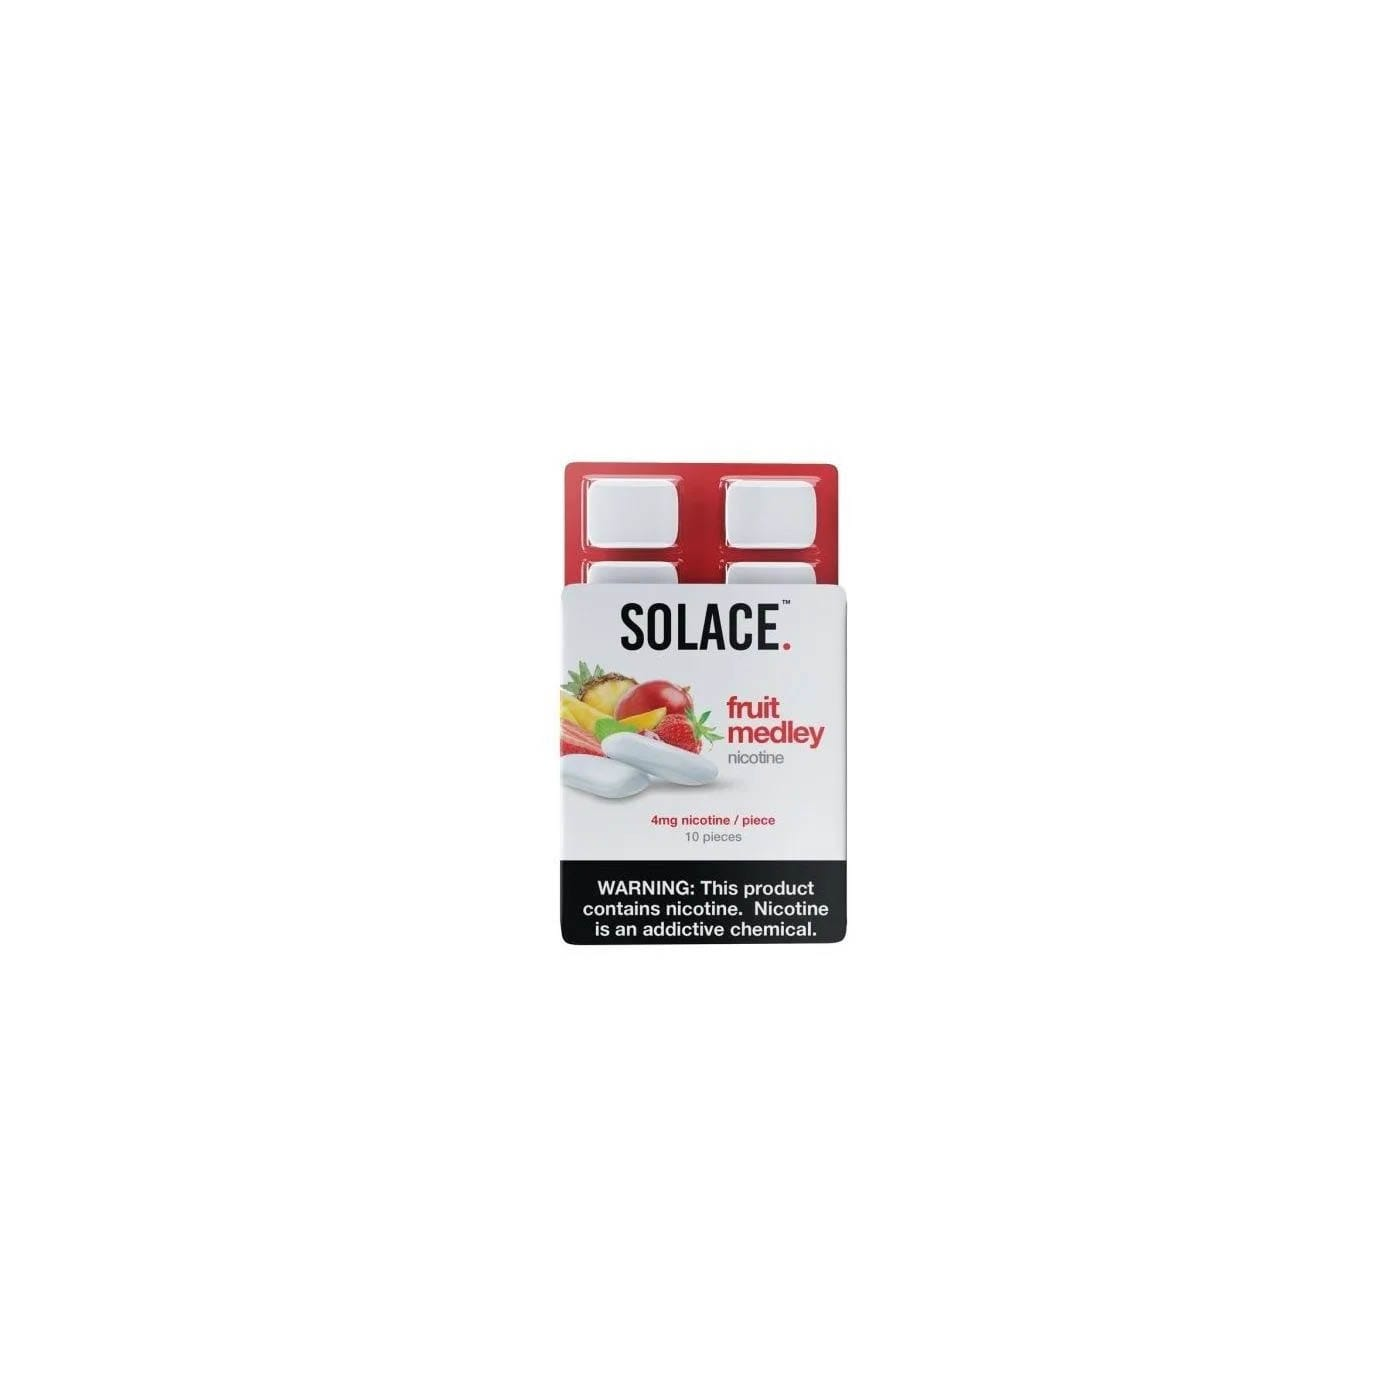 SOLACE CHEW FRUIT MEDLEY - 1 PACK (10 PCS)